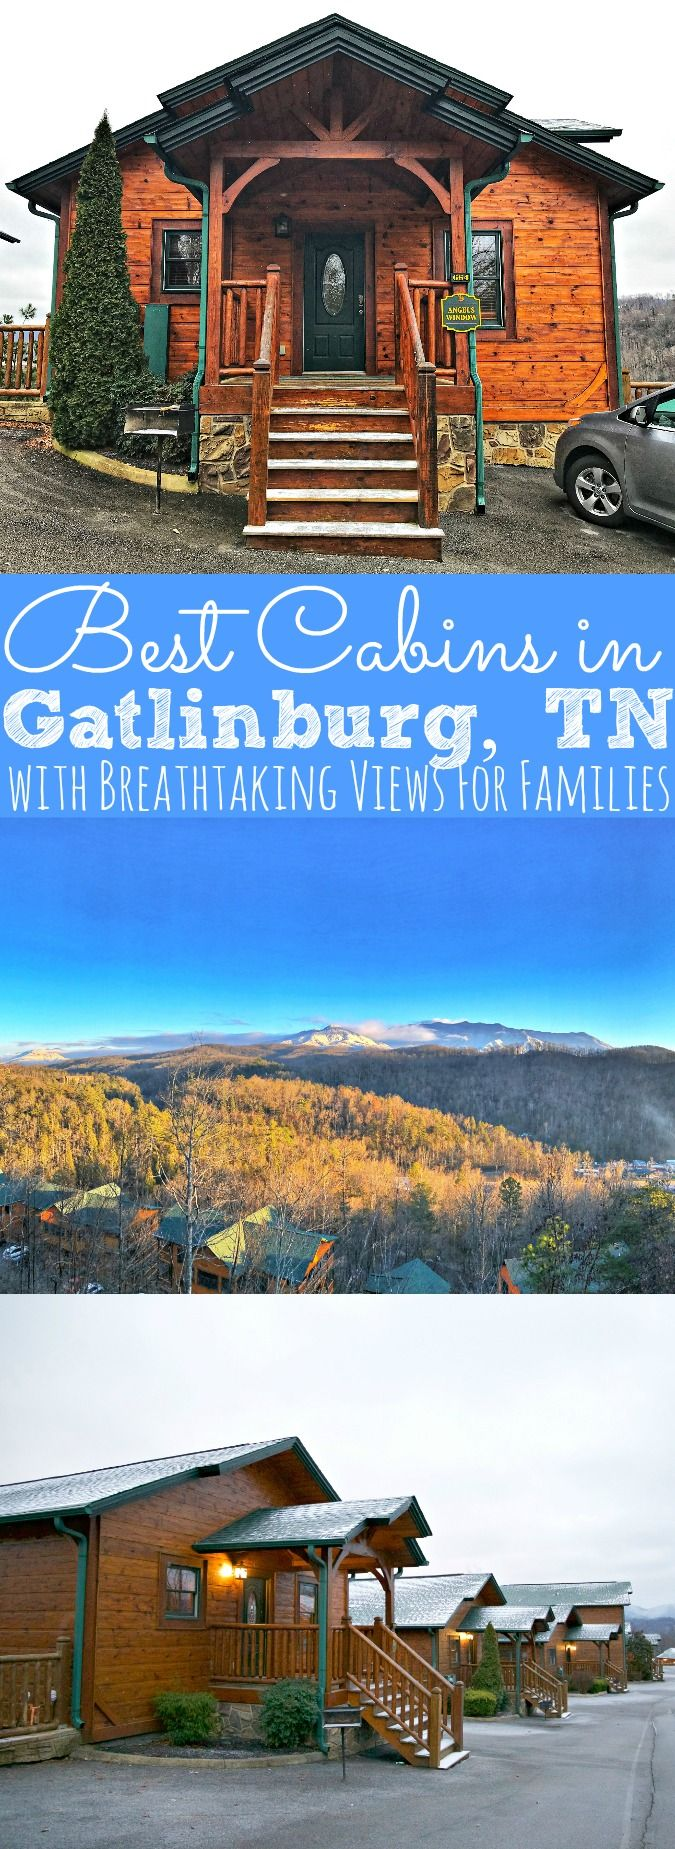 If you're looking for a weekend getaway with the most amazing views of the Smoky Mountains, then you need to check out the Best Cabins in Gatlinburg, TN! Cabins of the Smoky Mountains are luxury family friendly cabin resort that has every amenity a family could wish for! - simplytodaylife.com via @SimplyTodayLife